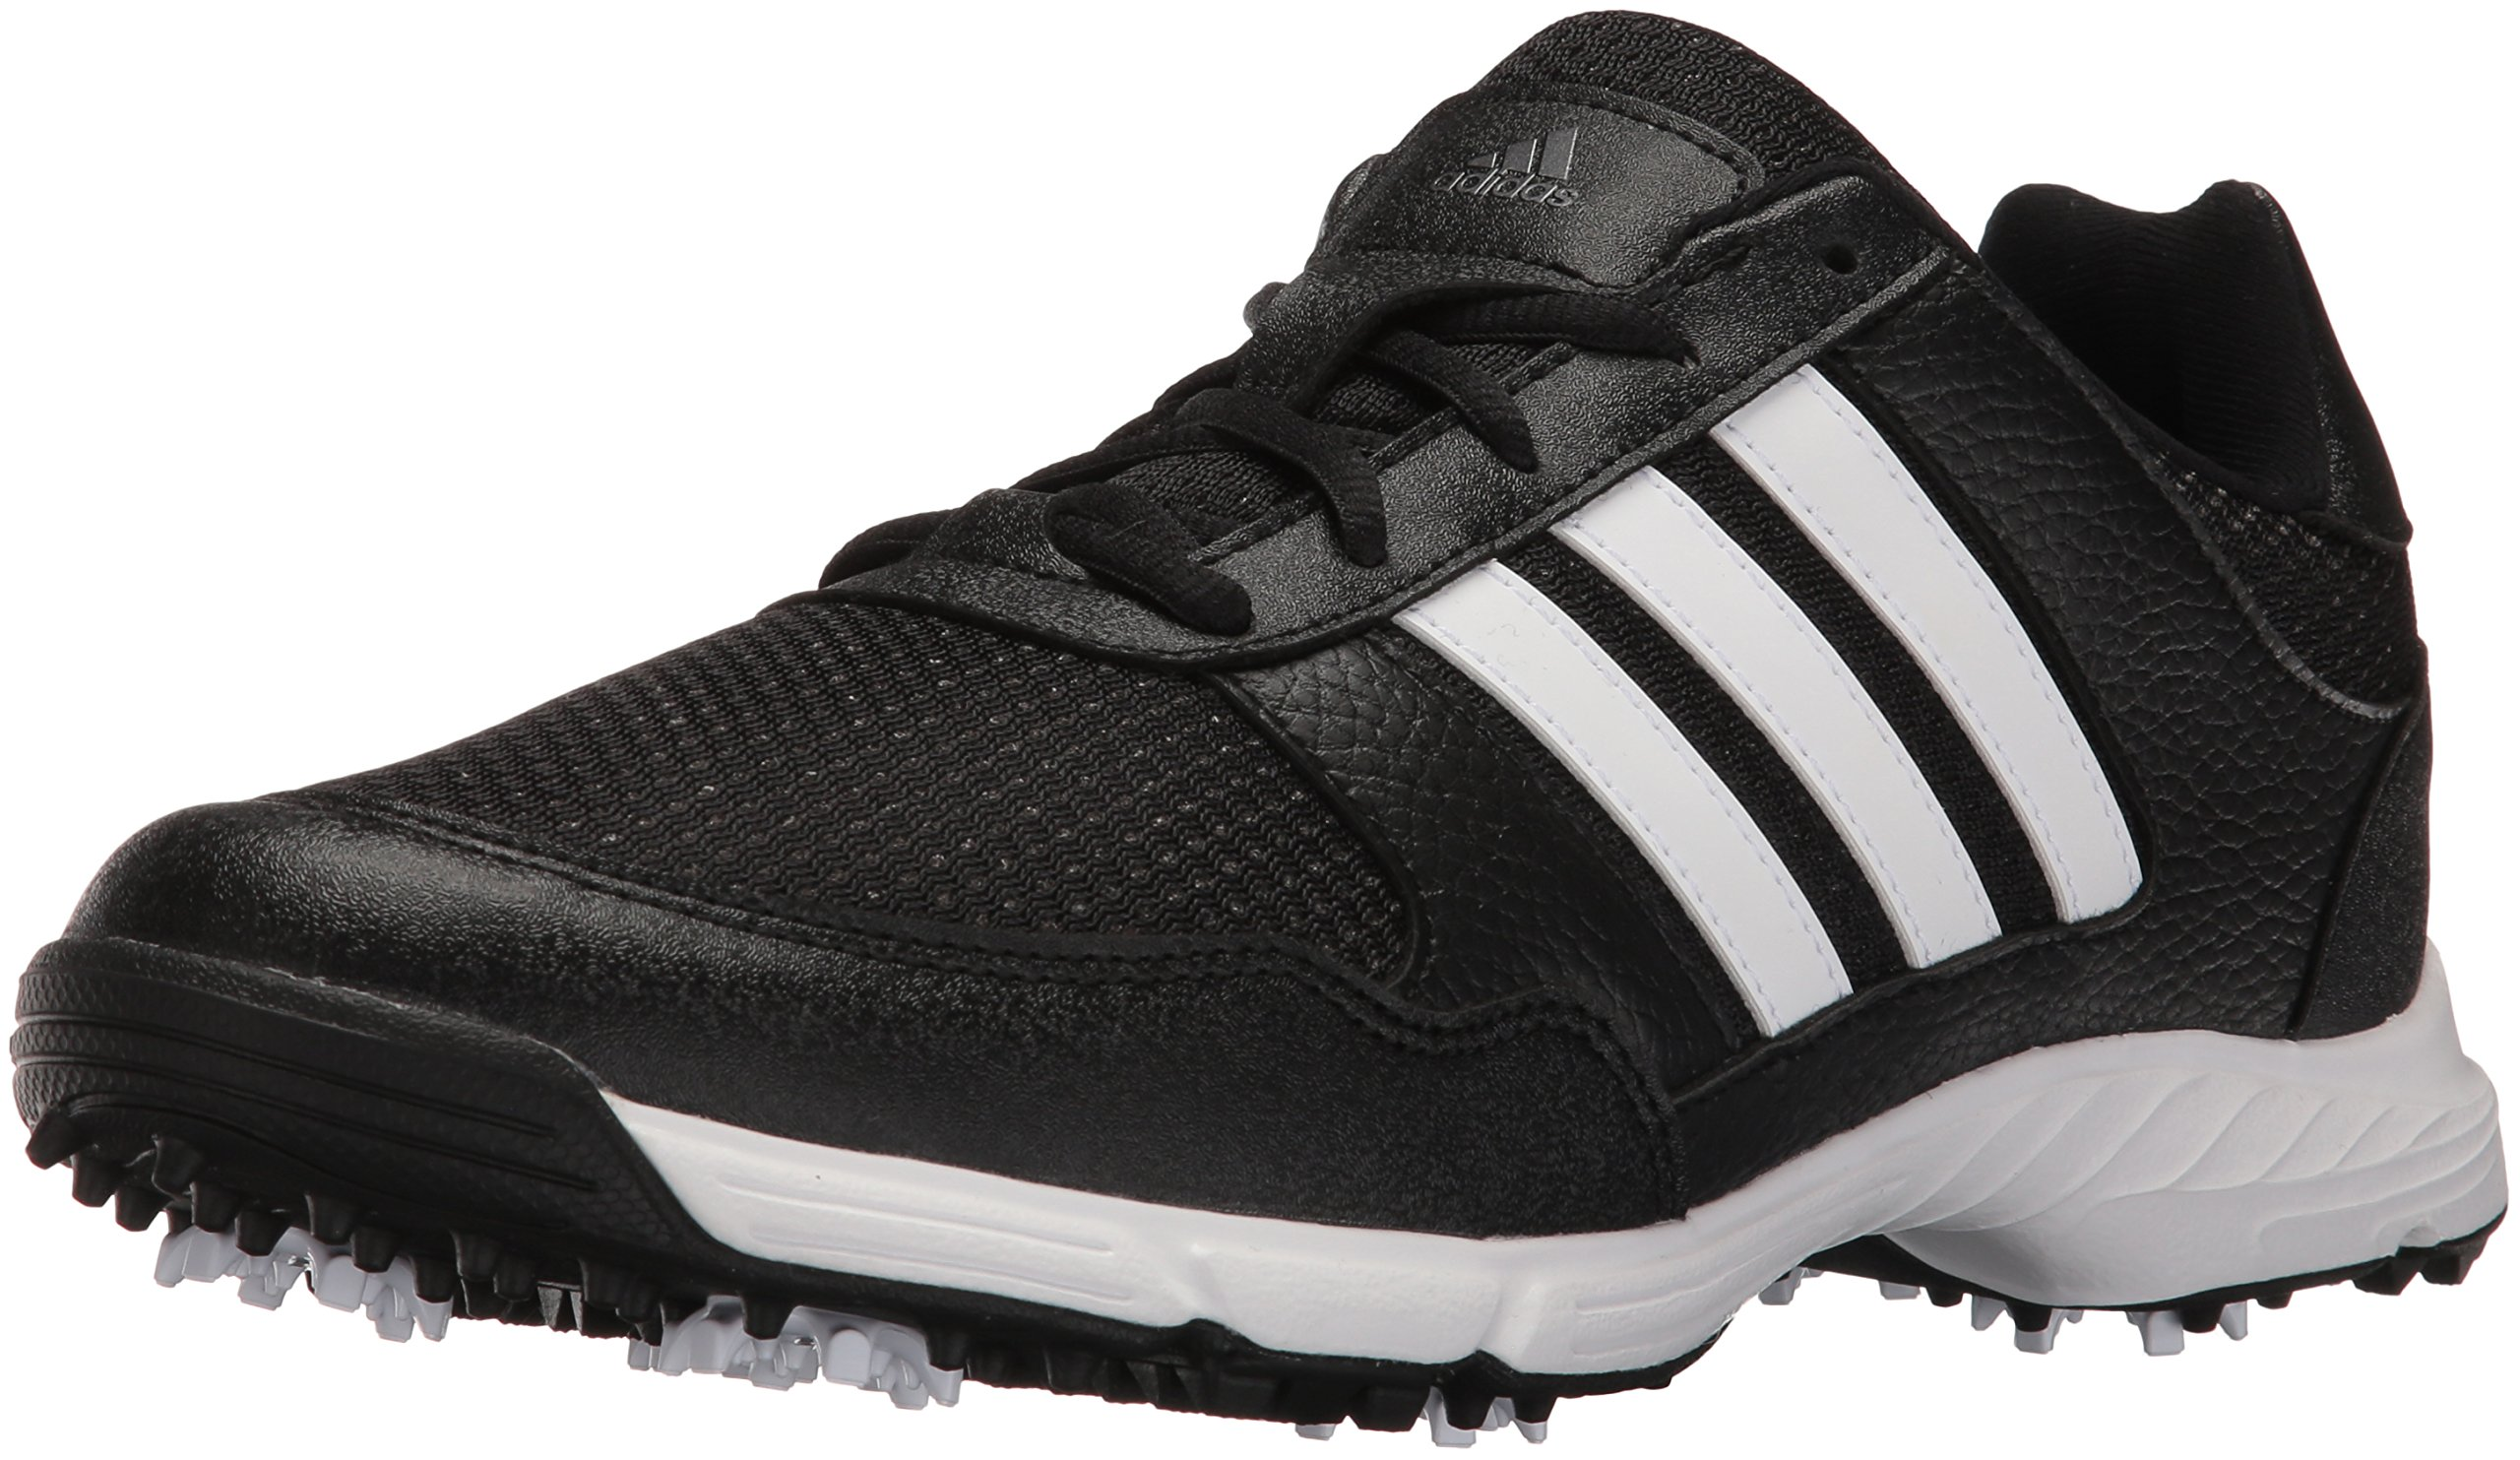 adidas Men's Tech Response Golf Shoe, Black, 9 W US by adidas